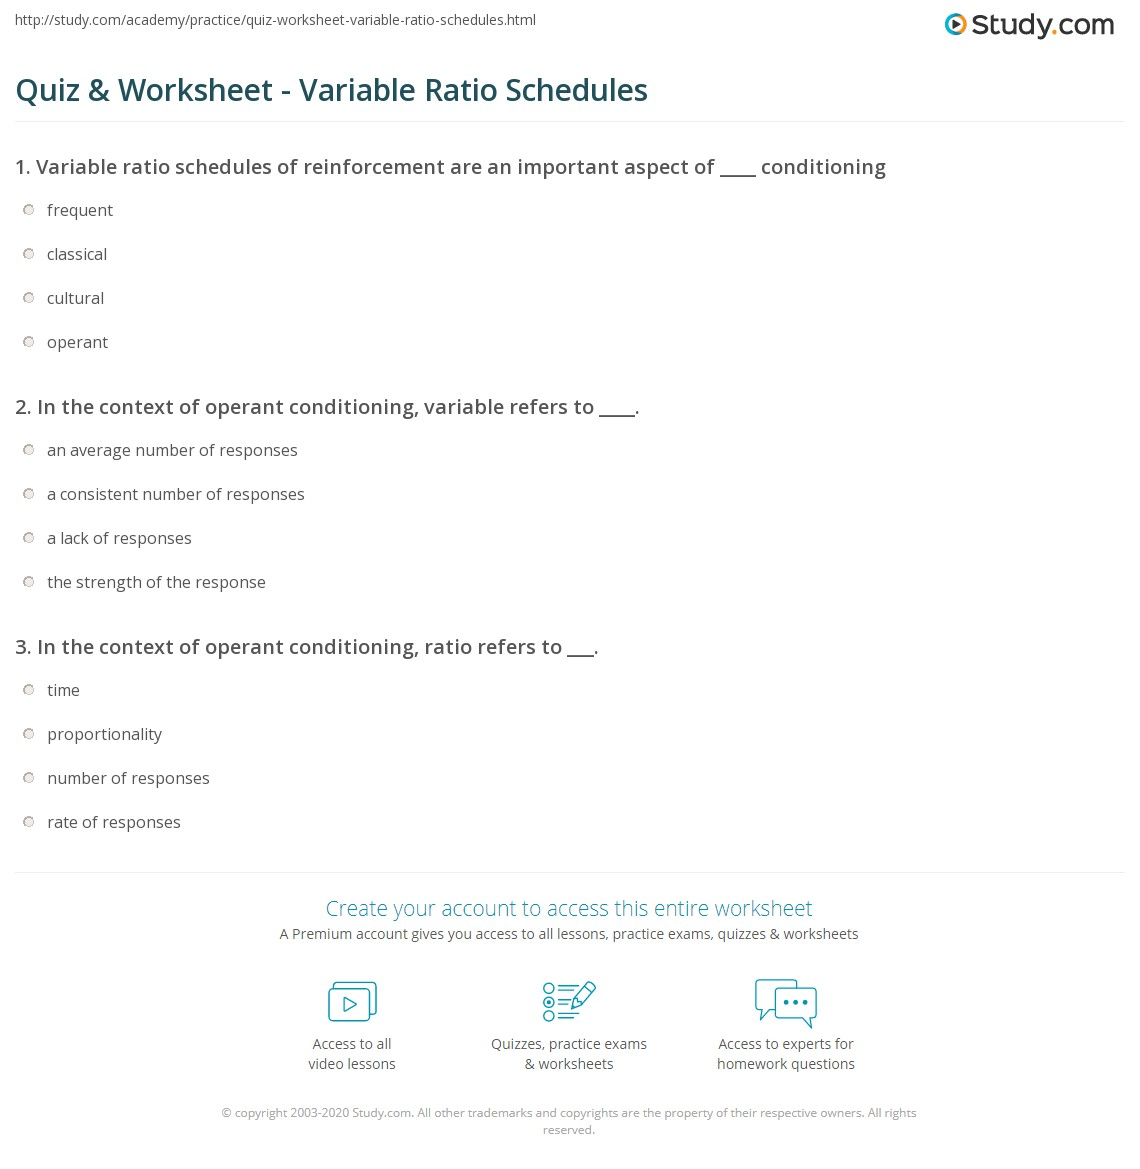 Worksheets Schedules Of Reinforcement Worksheet quiz worksheet variable ratio schedules study com print examples definition worksheet